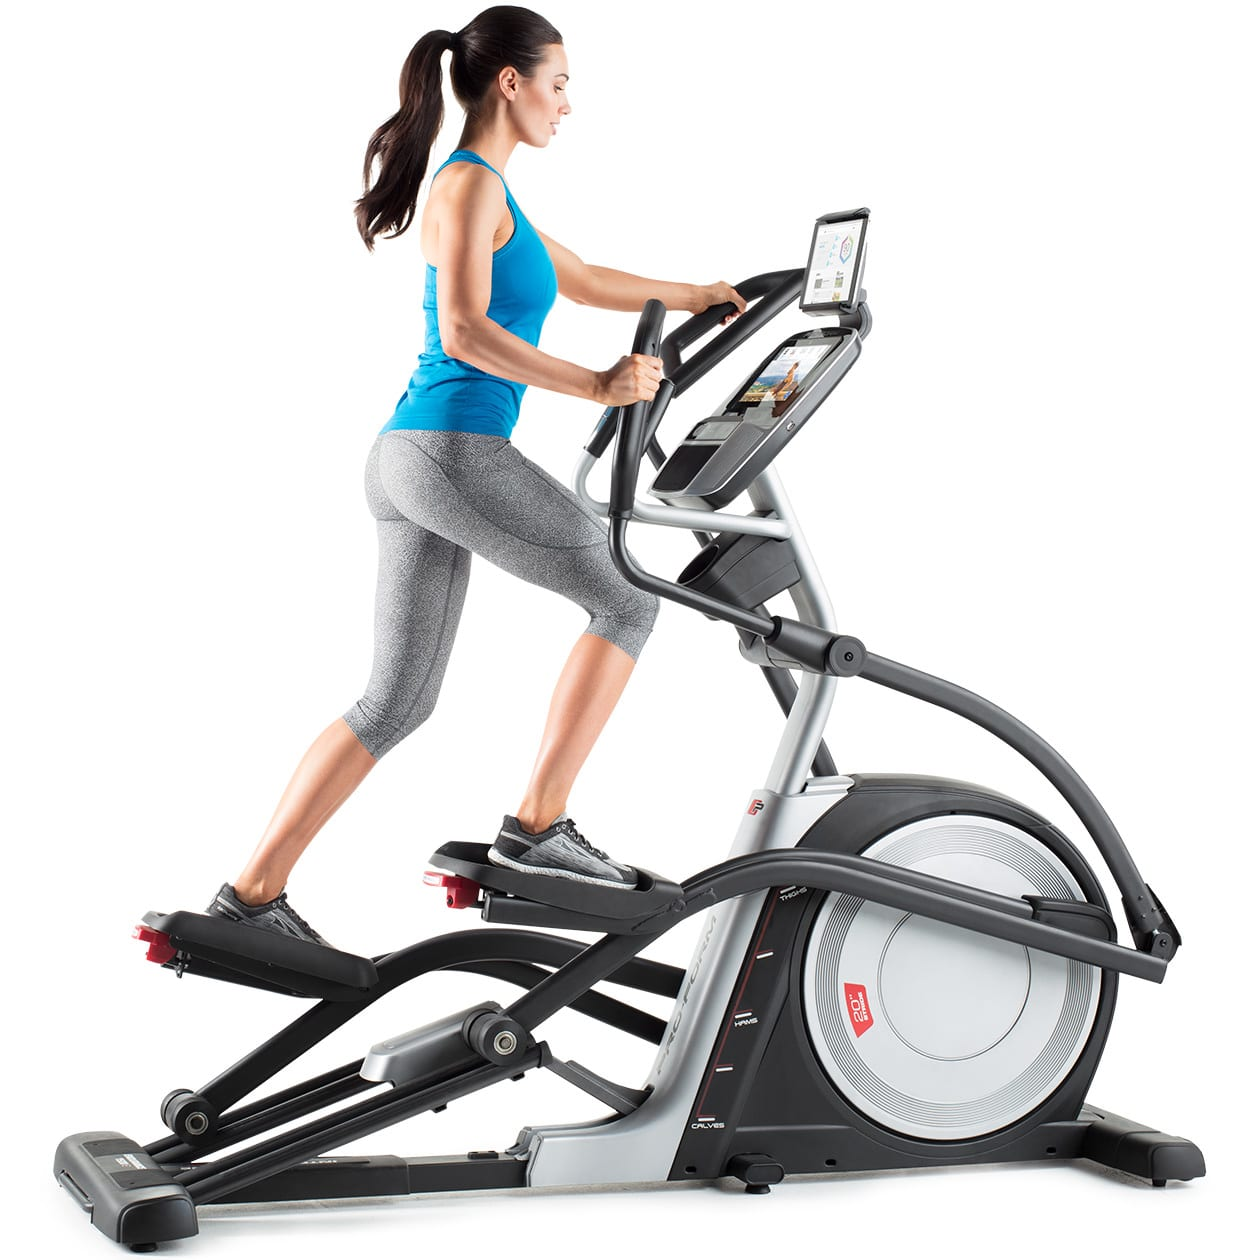 Proform Ellipticals SMART Pro 16.9  gallery image 4